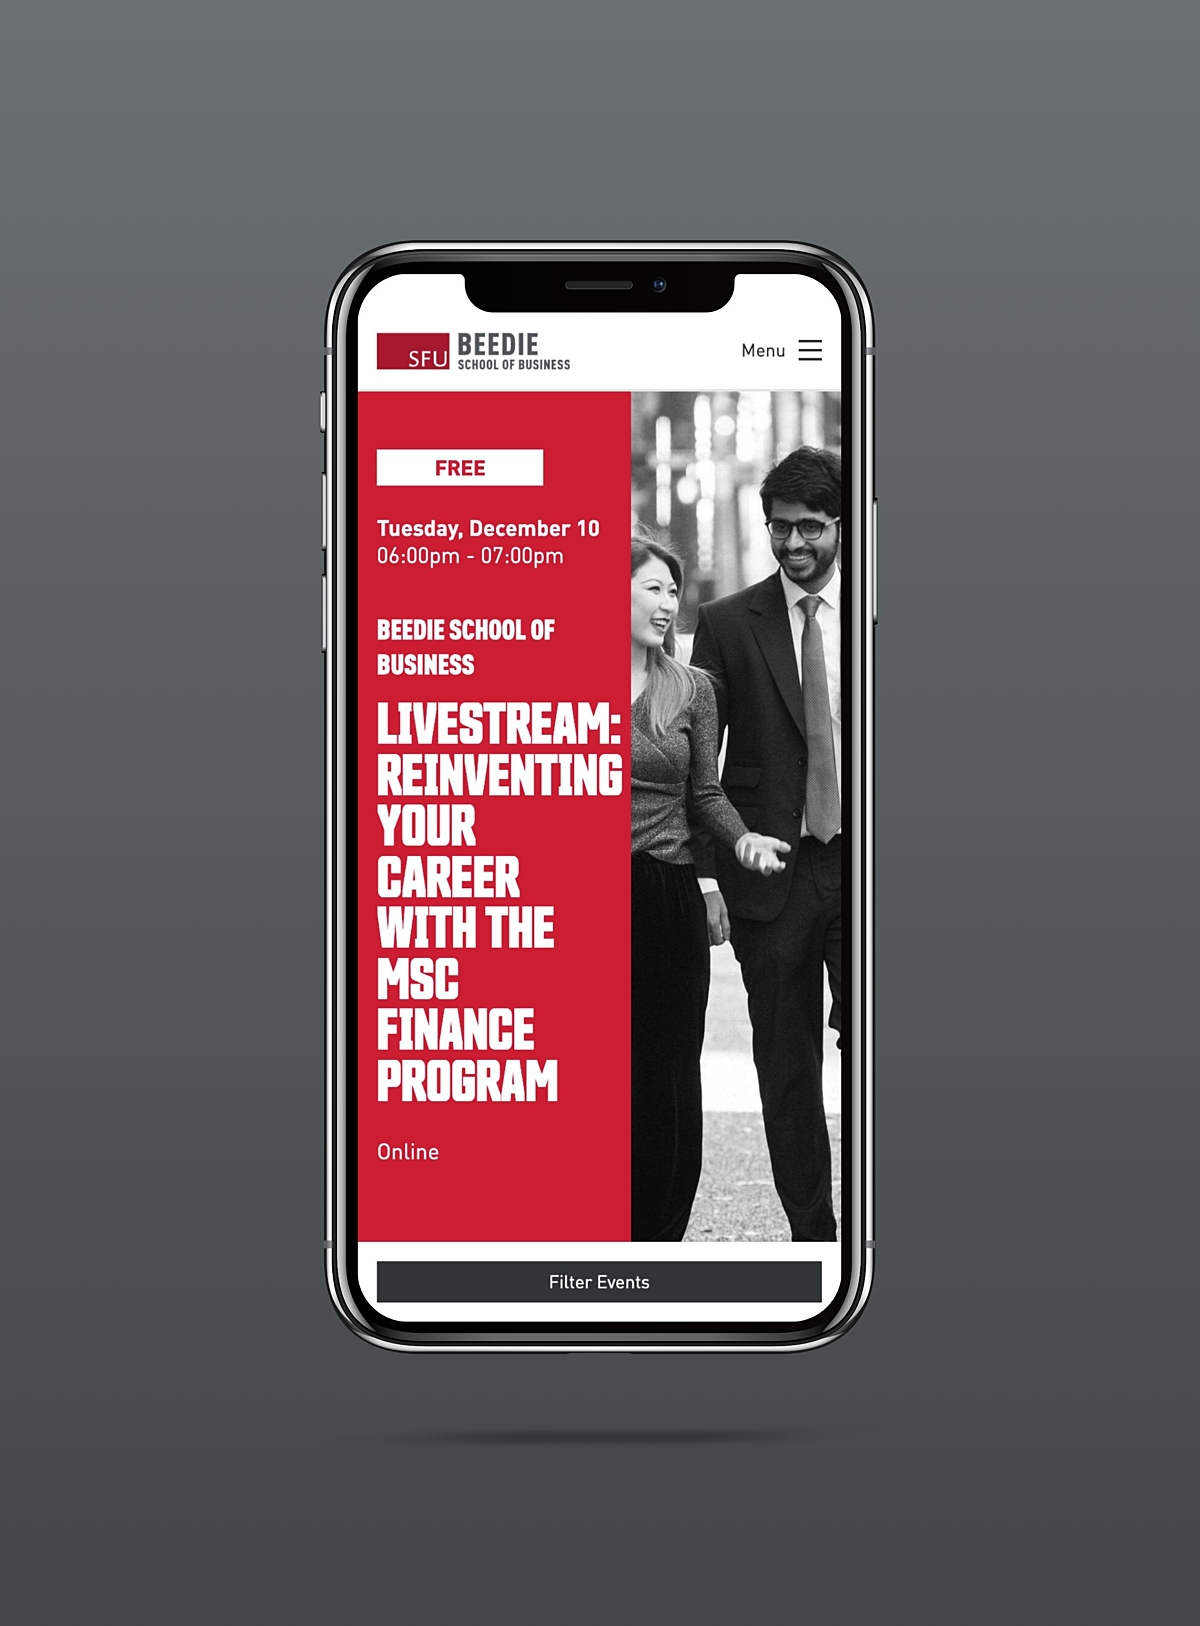 SFU Beedie mobile event registration example on iPhone X